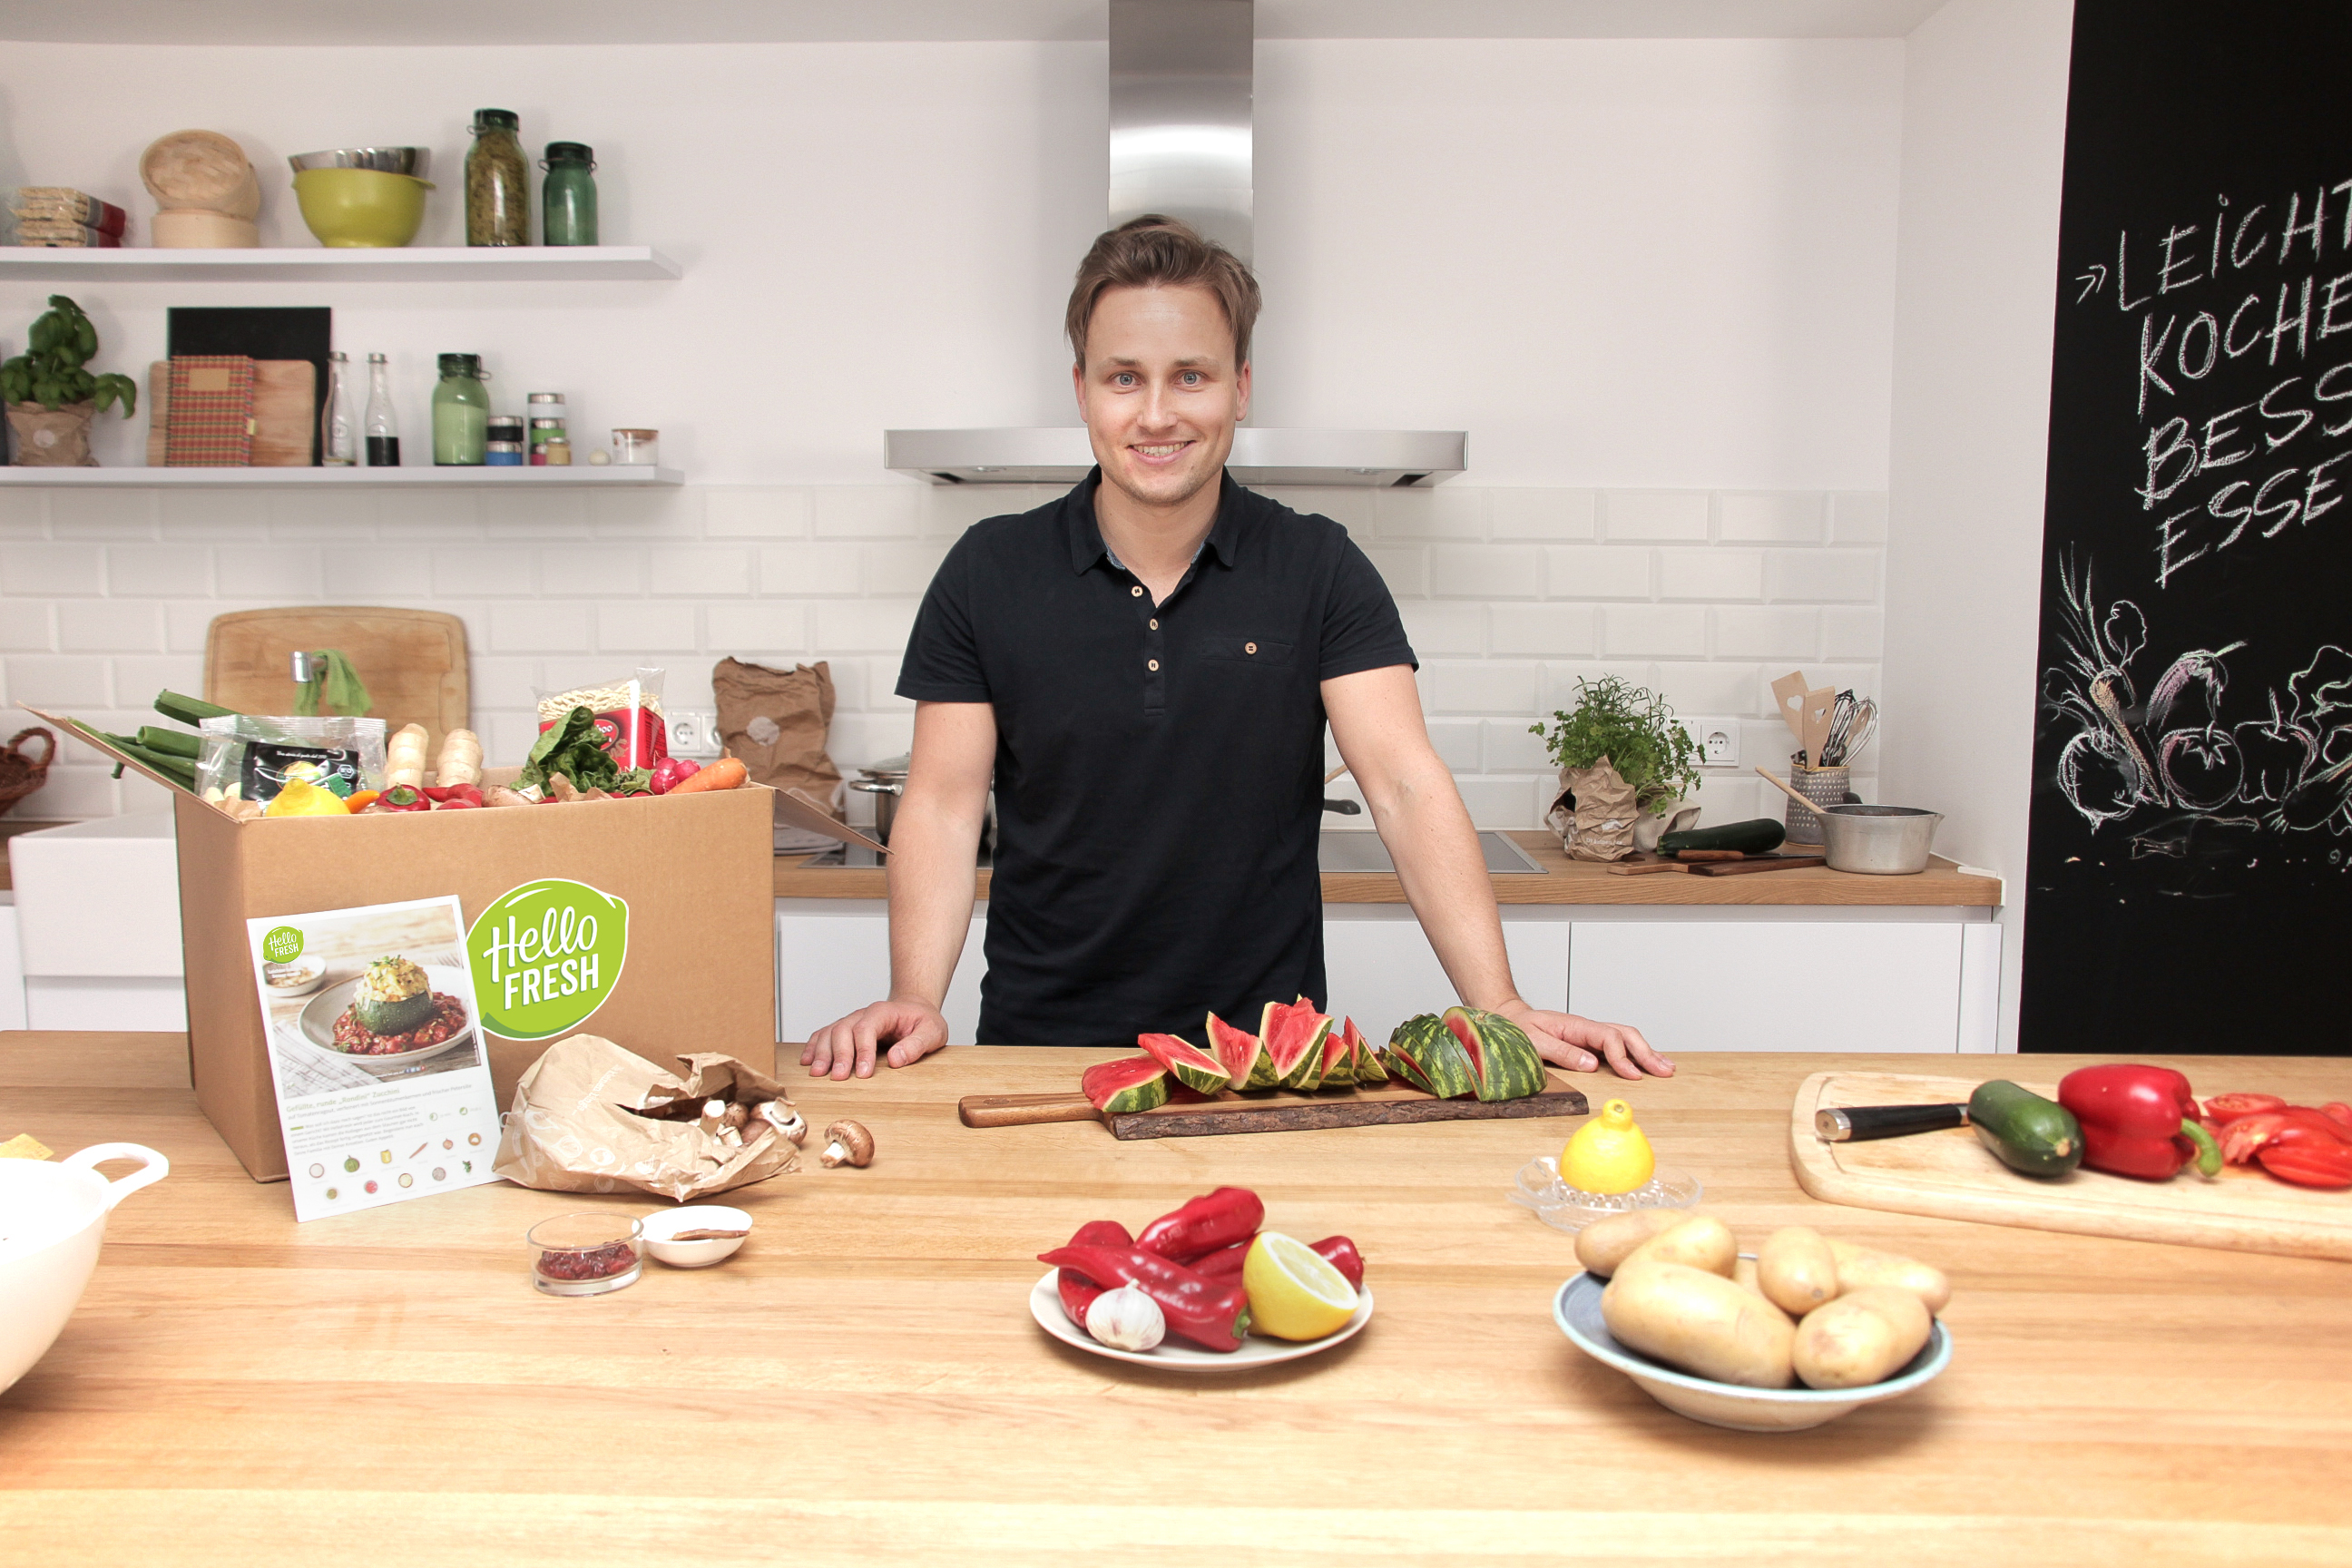 HelloFresh CEO Dominik Richter